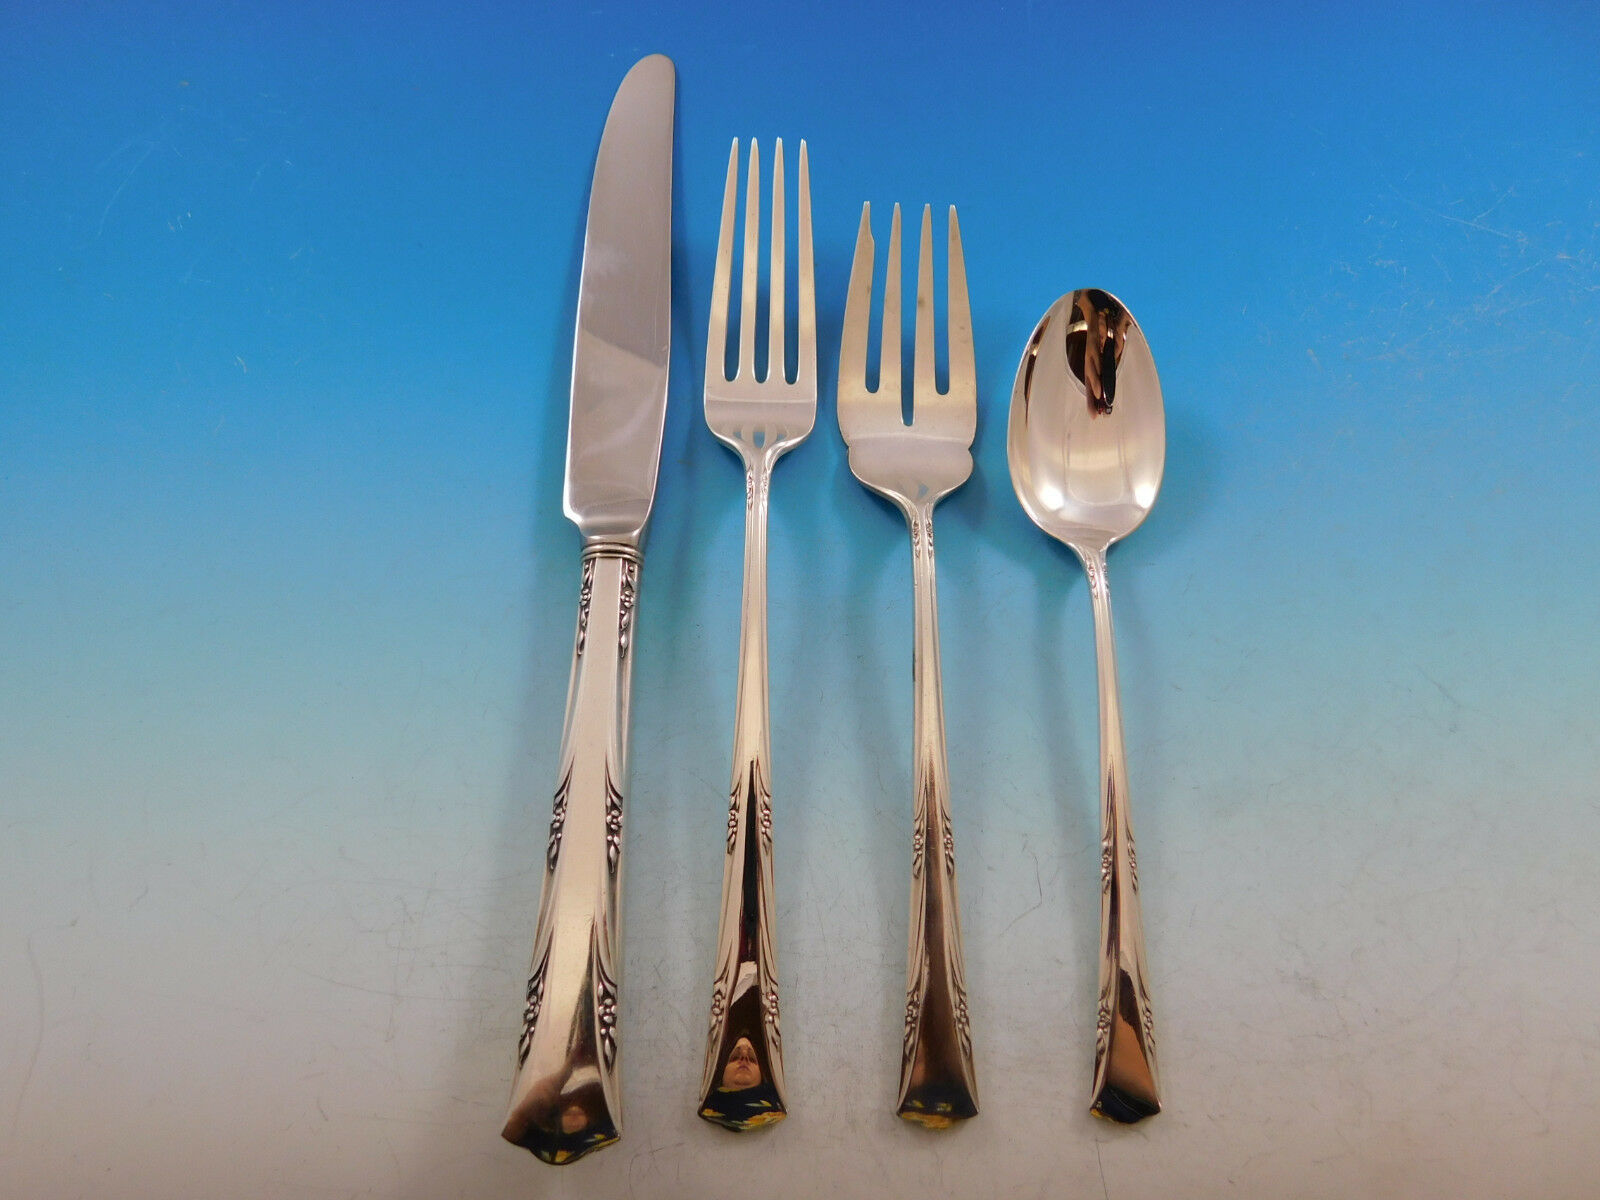 Greenbrier by Gorham Sterling Silver Flatware Set for 8 Service 56 Pieces image 3